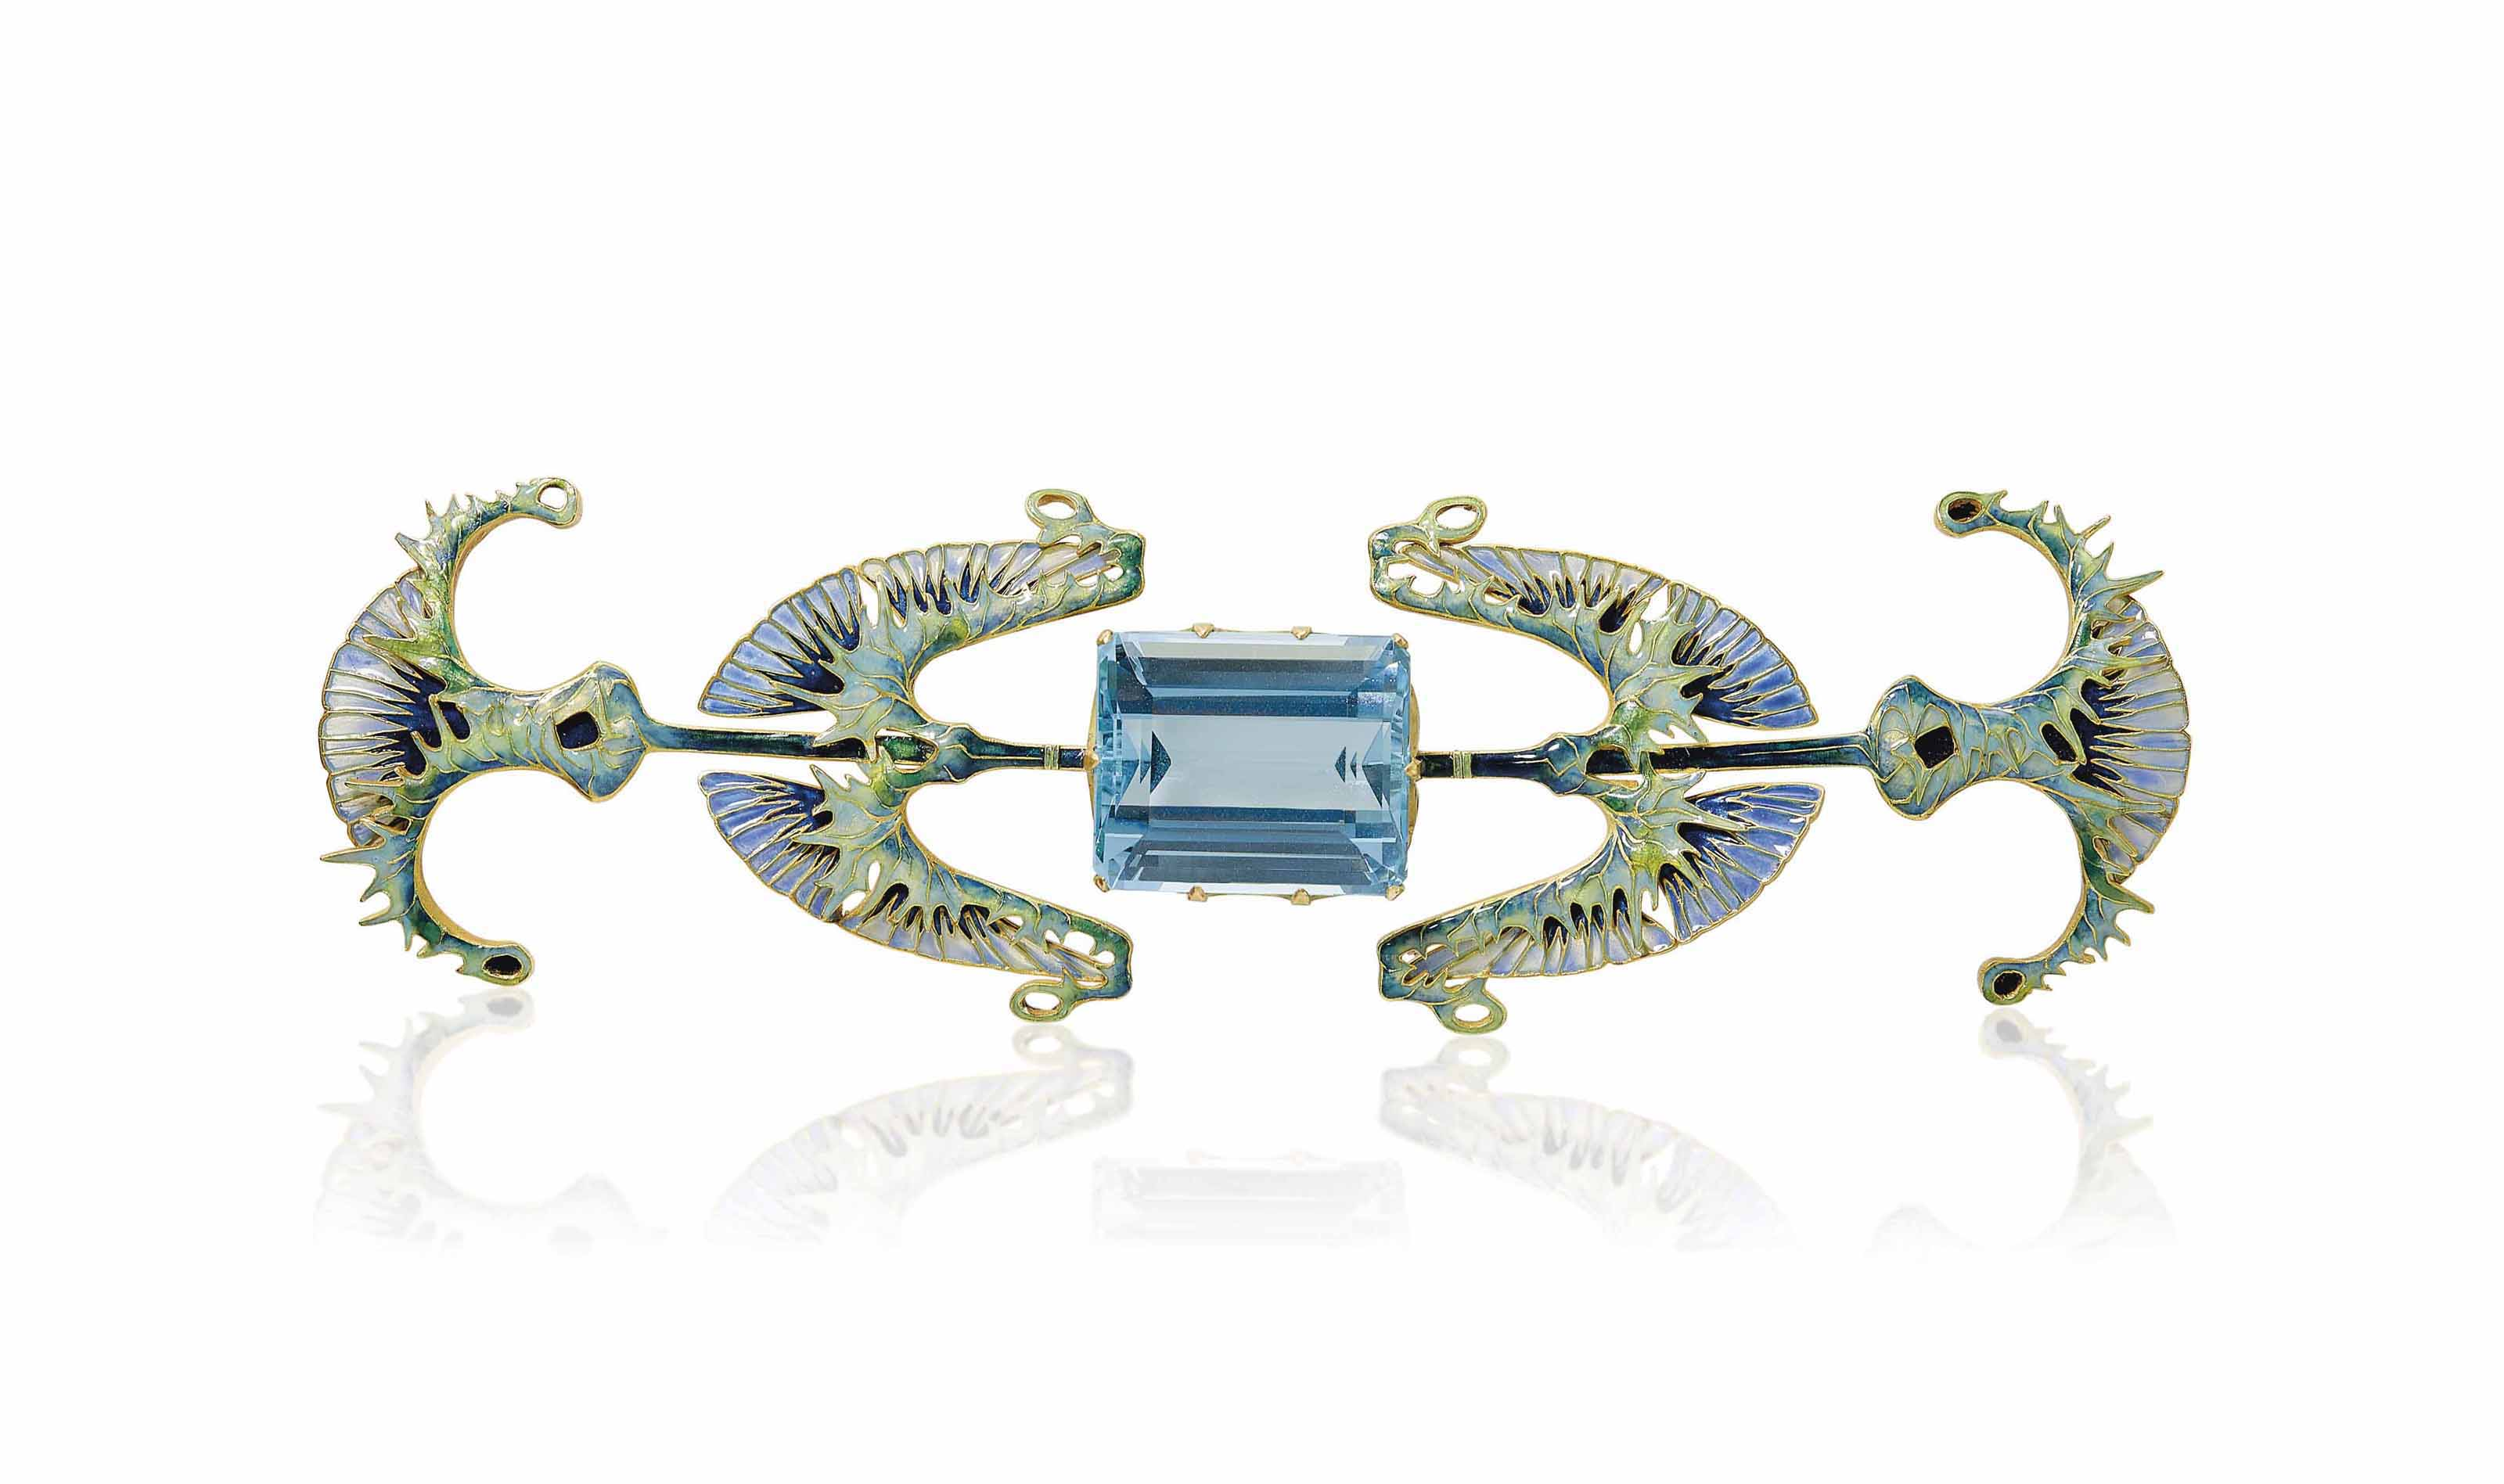 AN ART NOUVEAU AQUAMARINE AND ENAMEL 'THISTLE' DEVANT-DE-CORSAGE, BY RENÉ LALIQUE